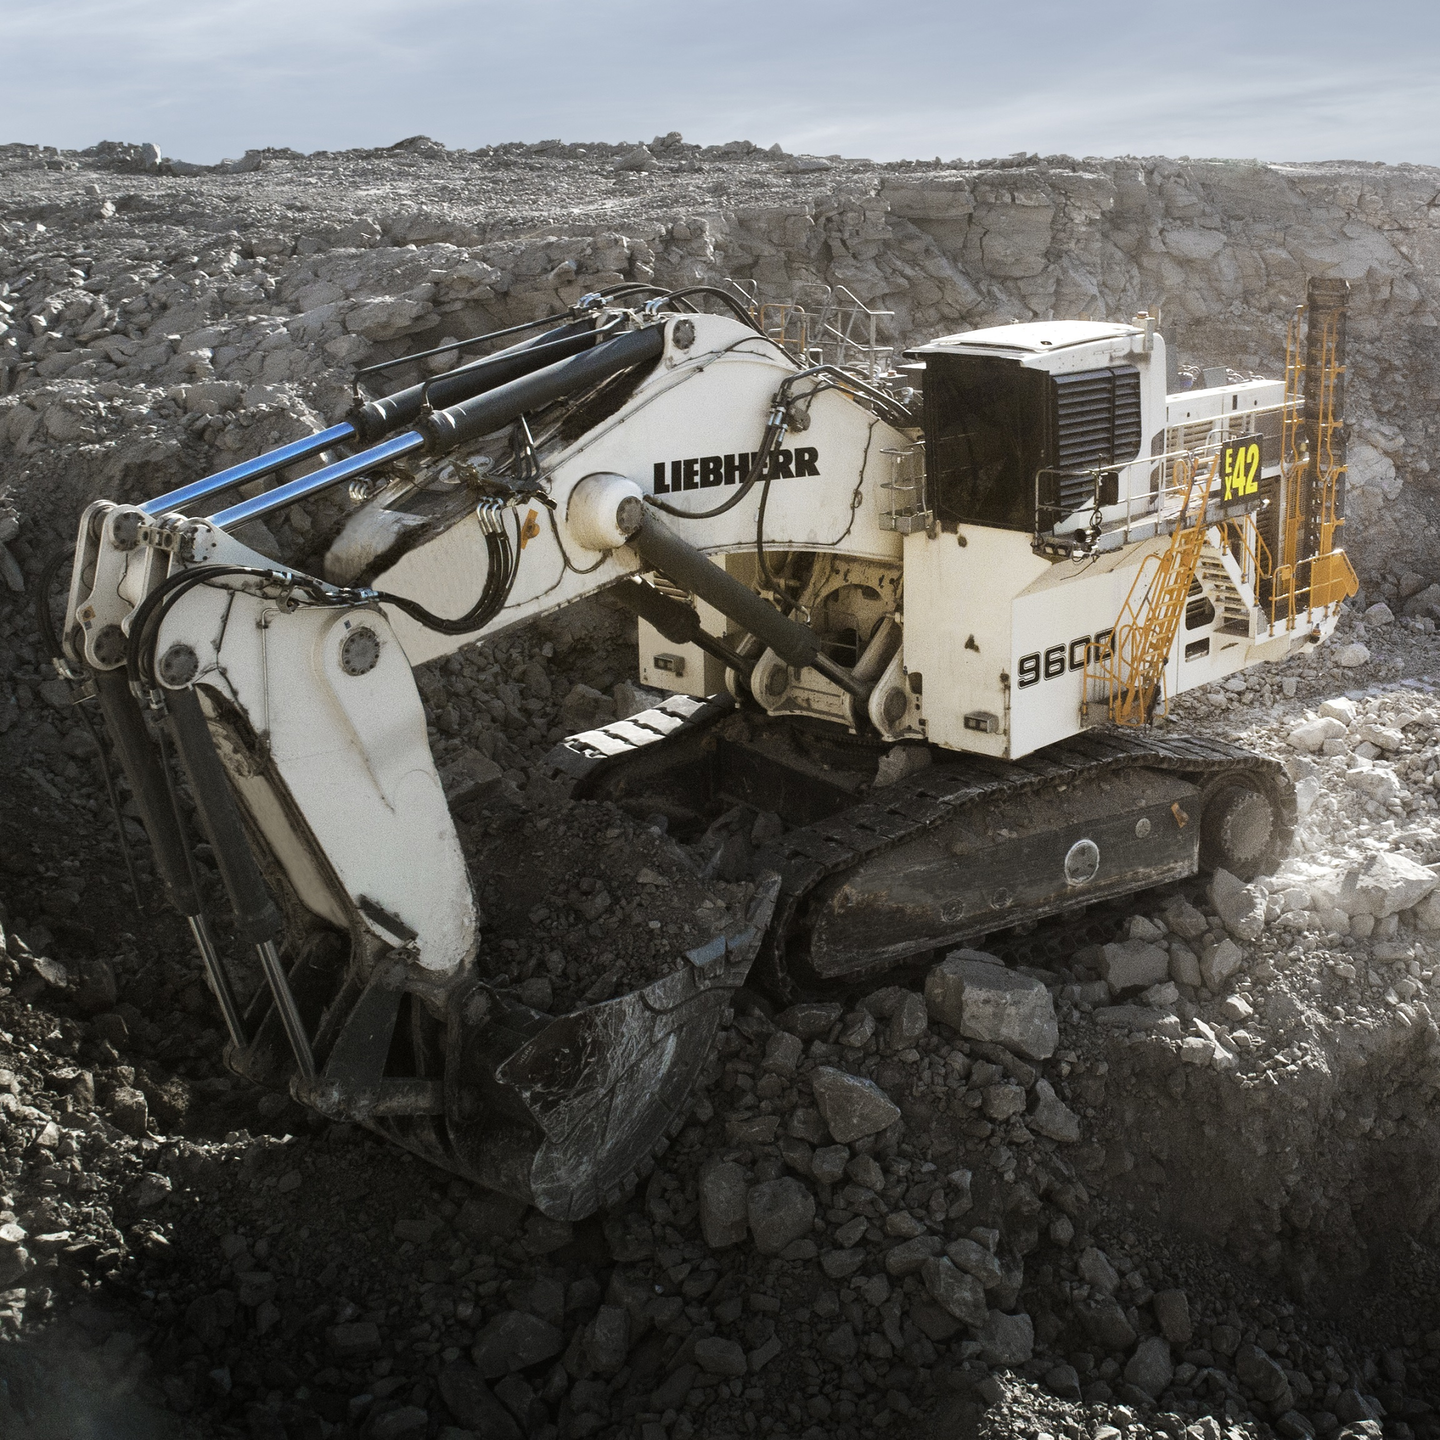 The R9600 is one of three new excavators Liebherr is debuting at MINExpo.